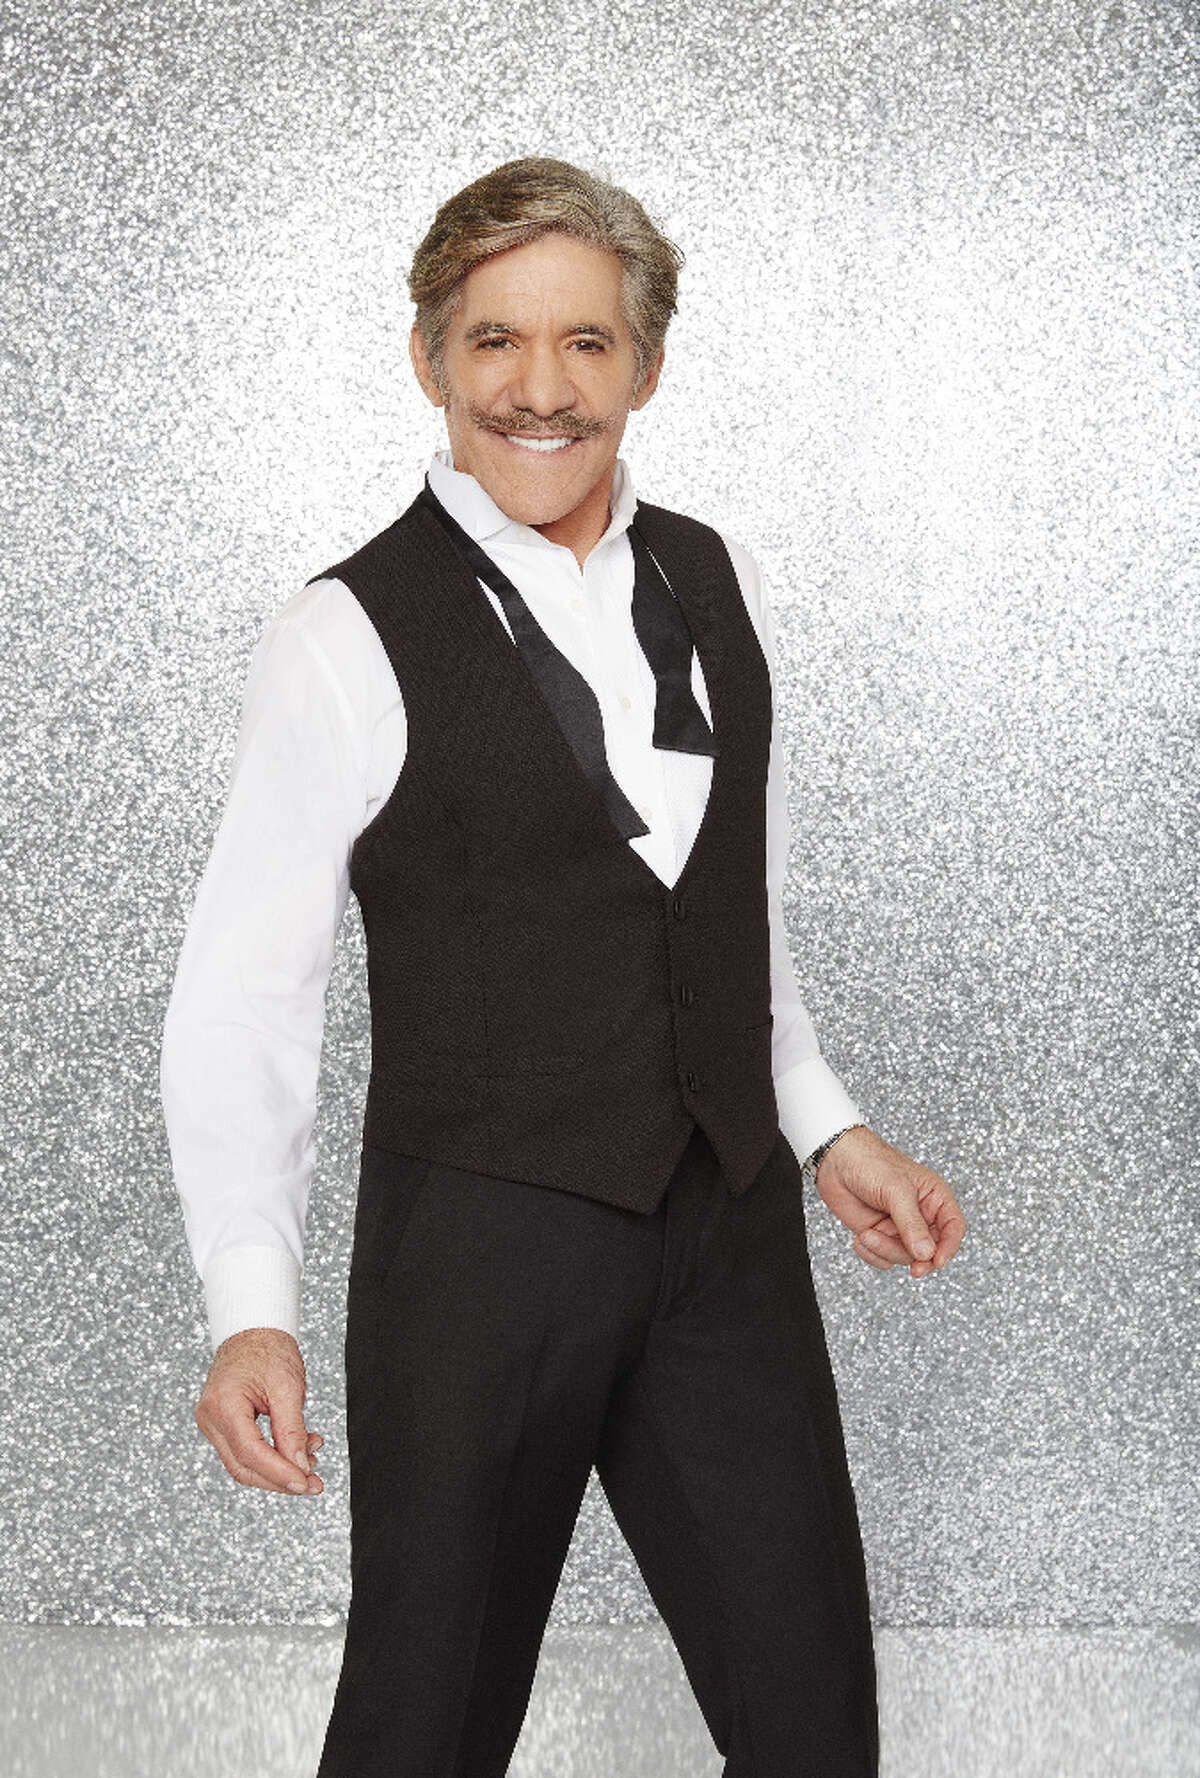 DANCING WITH THE STARS - GERALDO RIVERA - The stars grace the ballroom floor for the first time on live national television with their professional partners during the two-hour season premiere of